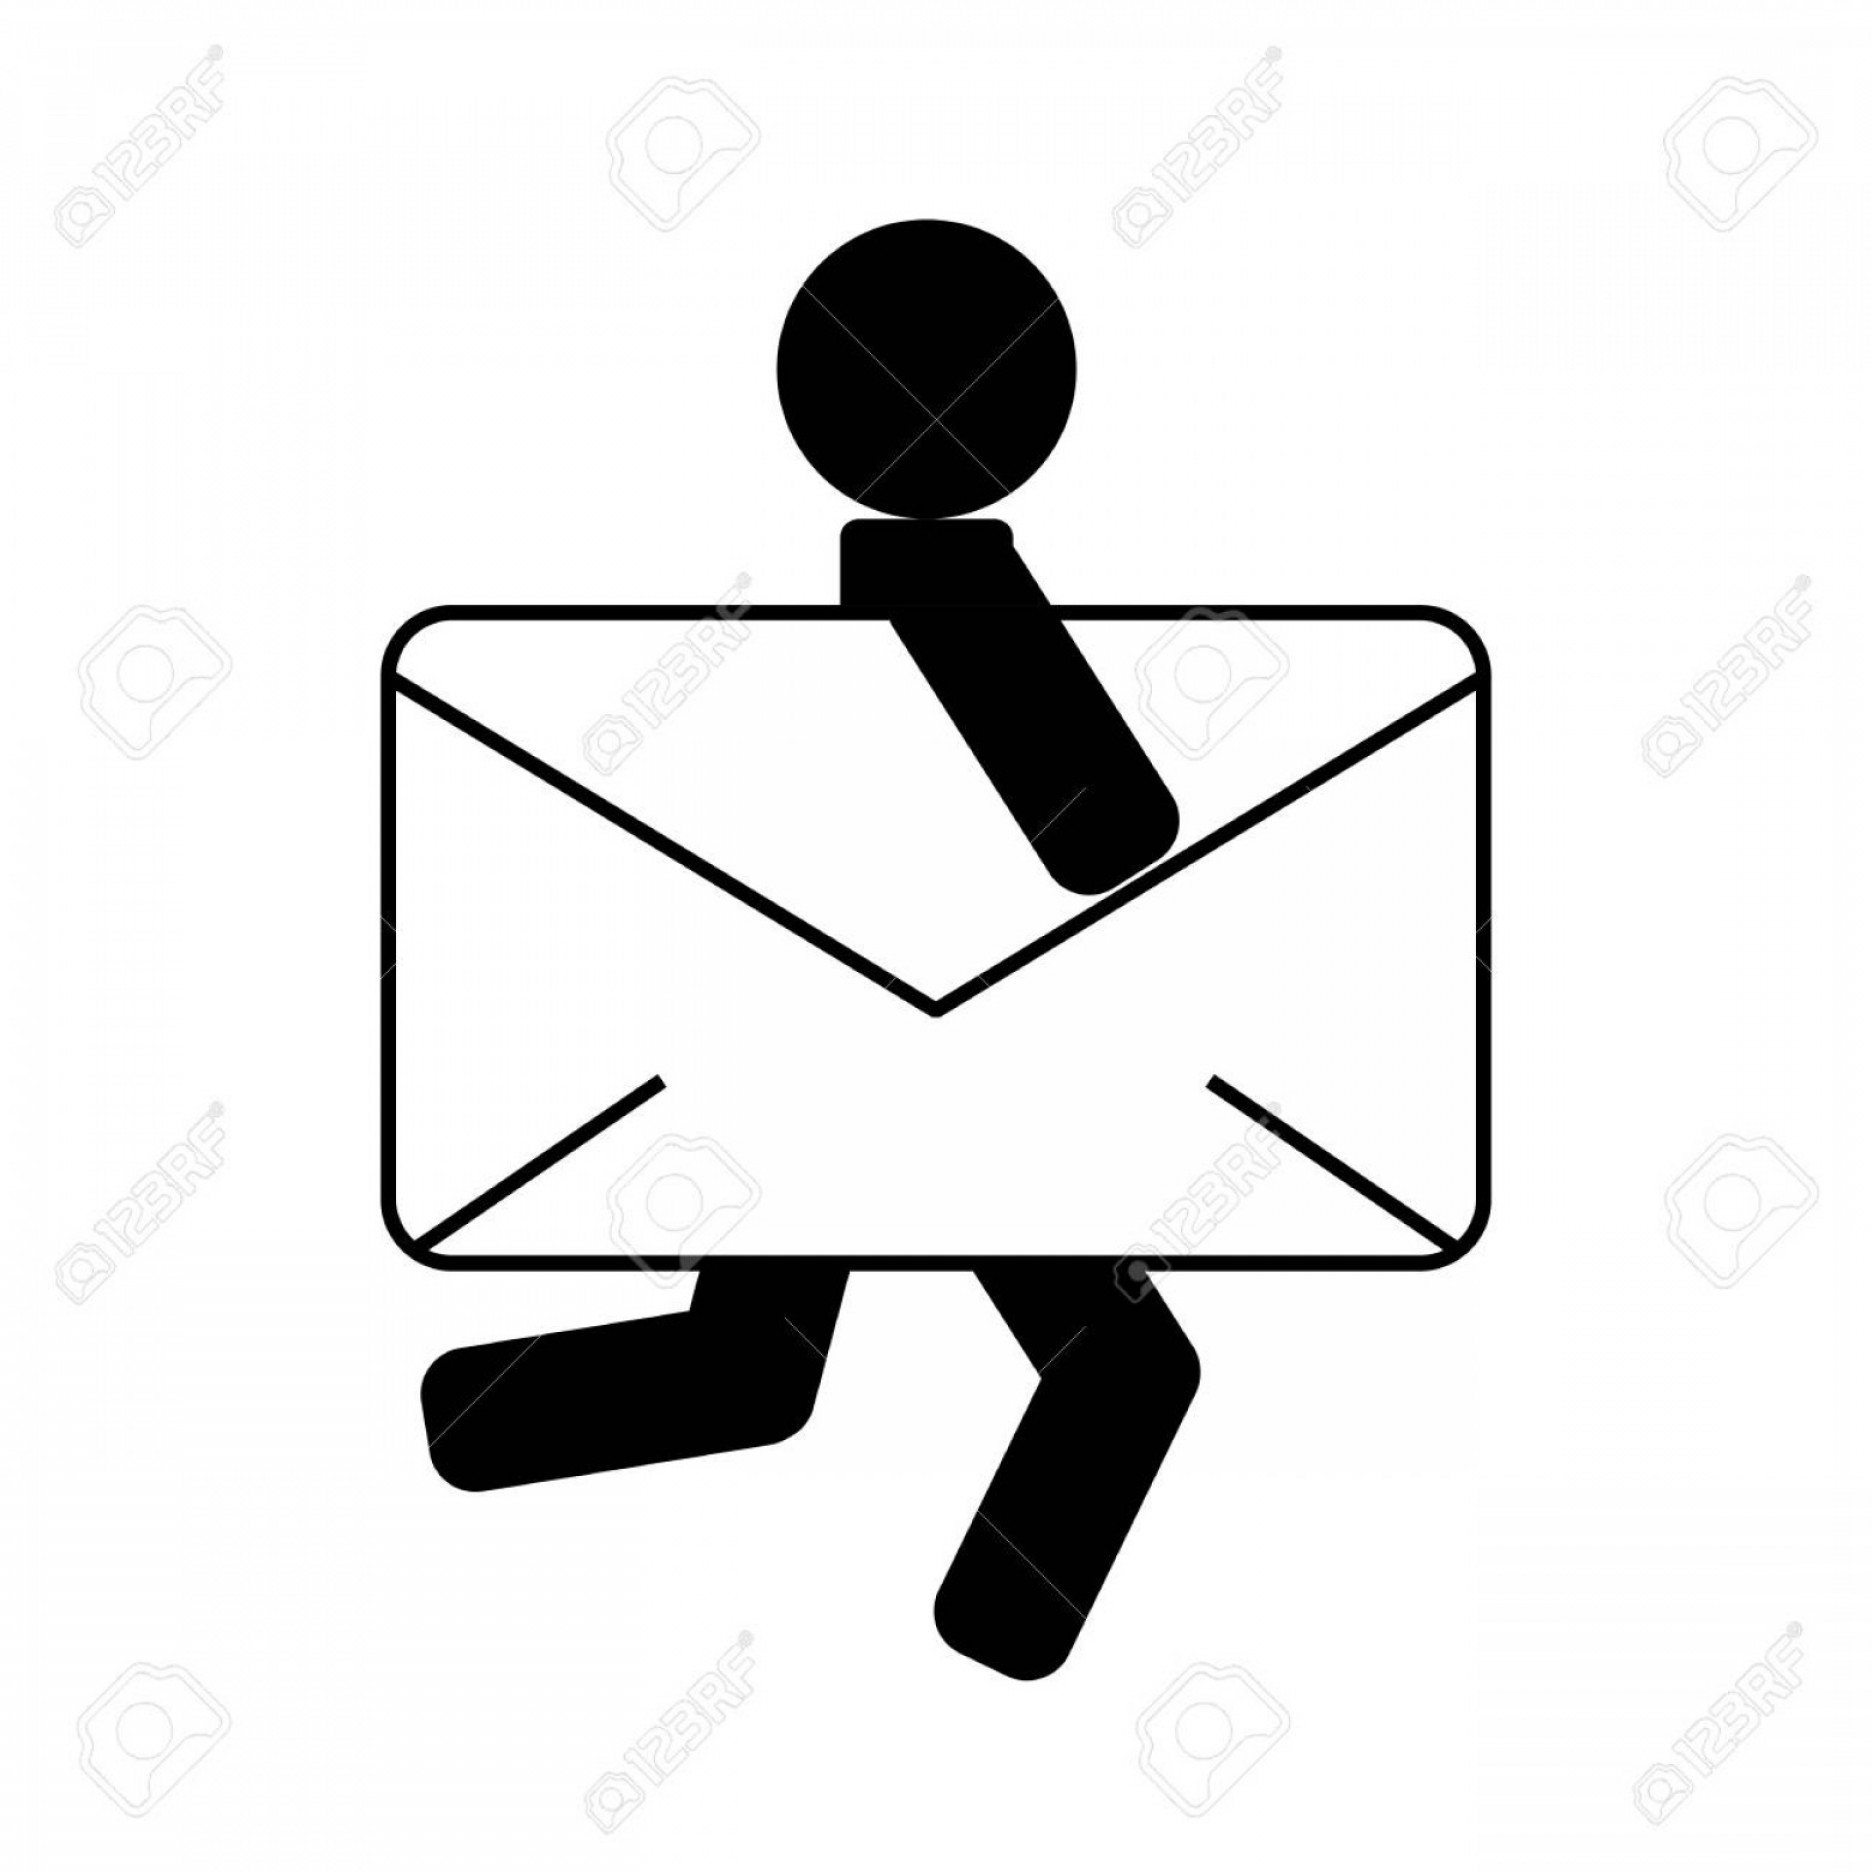 Vector Envelope Express: Photostock Vector Envelope And Person Icon Express Mail Delivery Icon